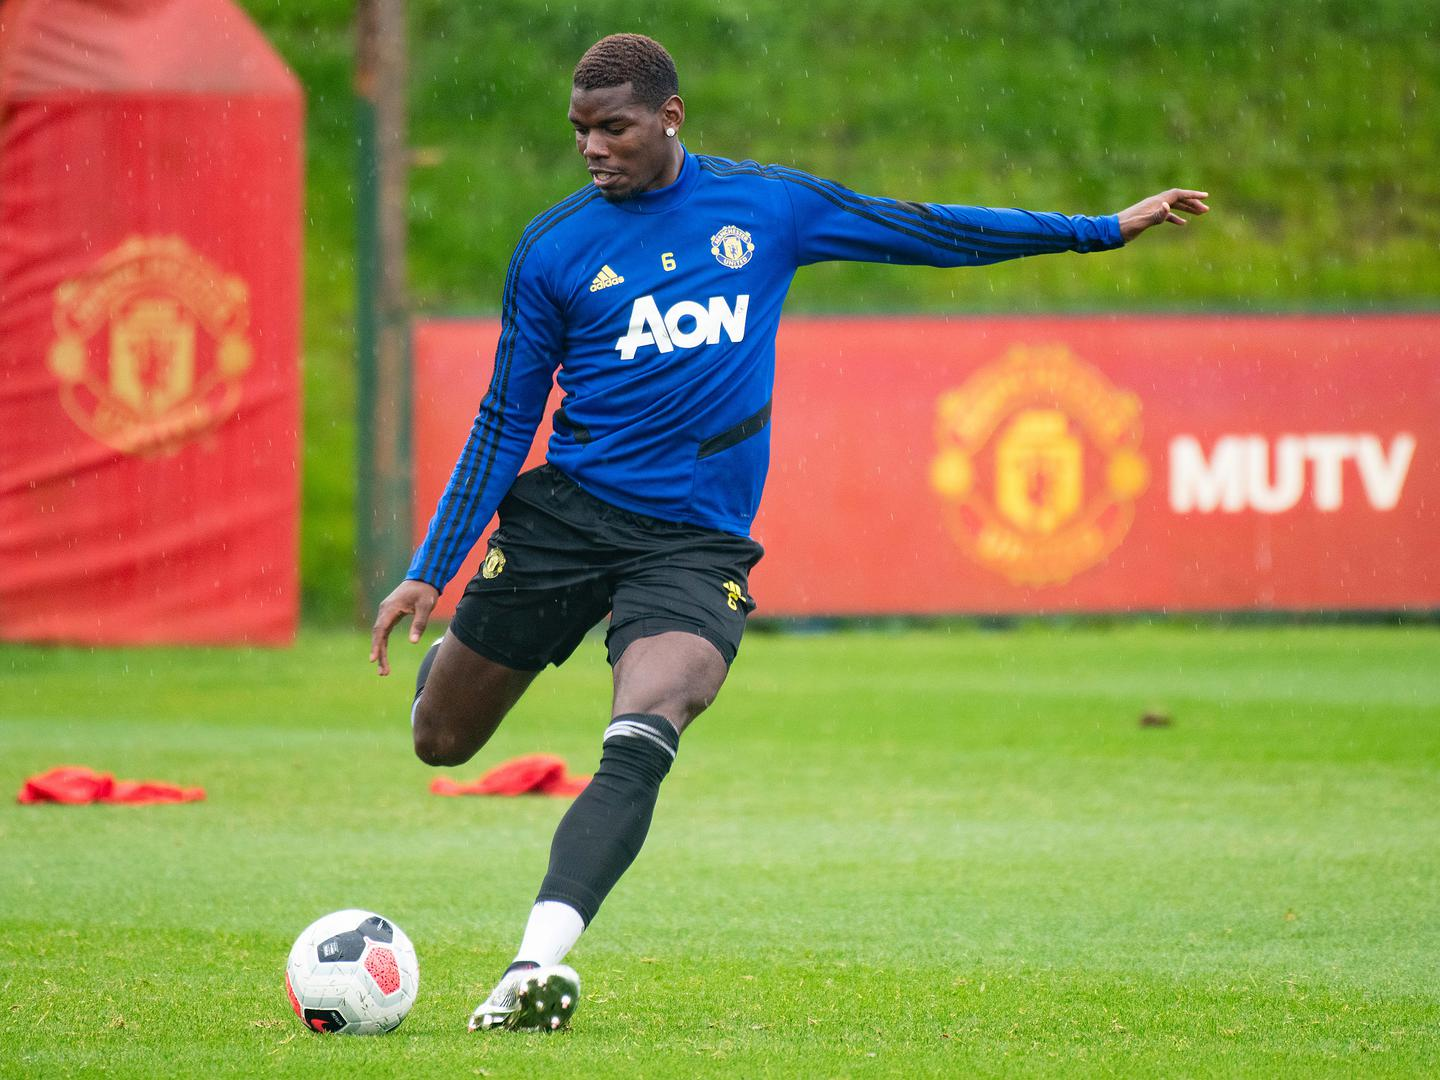 Paul Pogba in training for United.